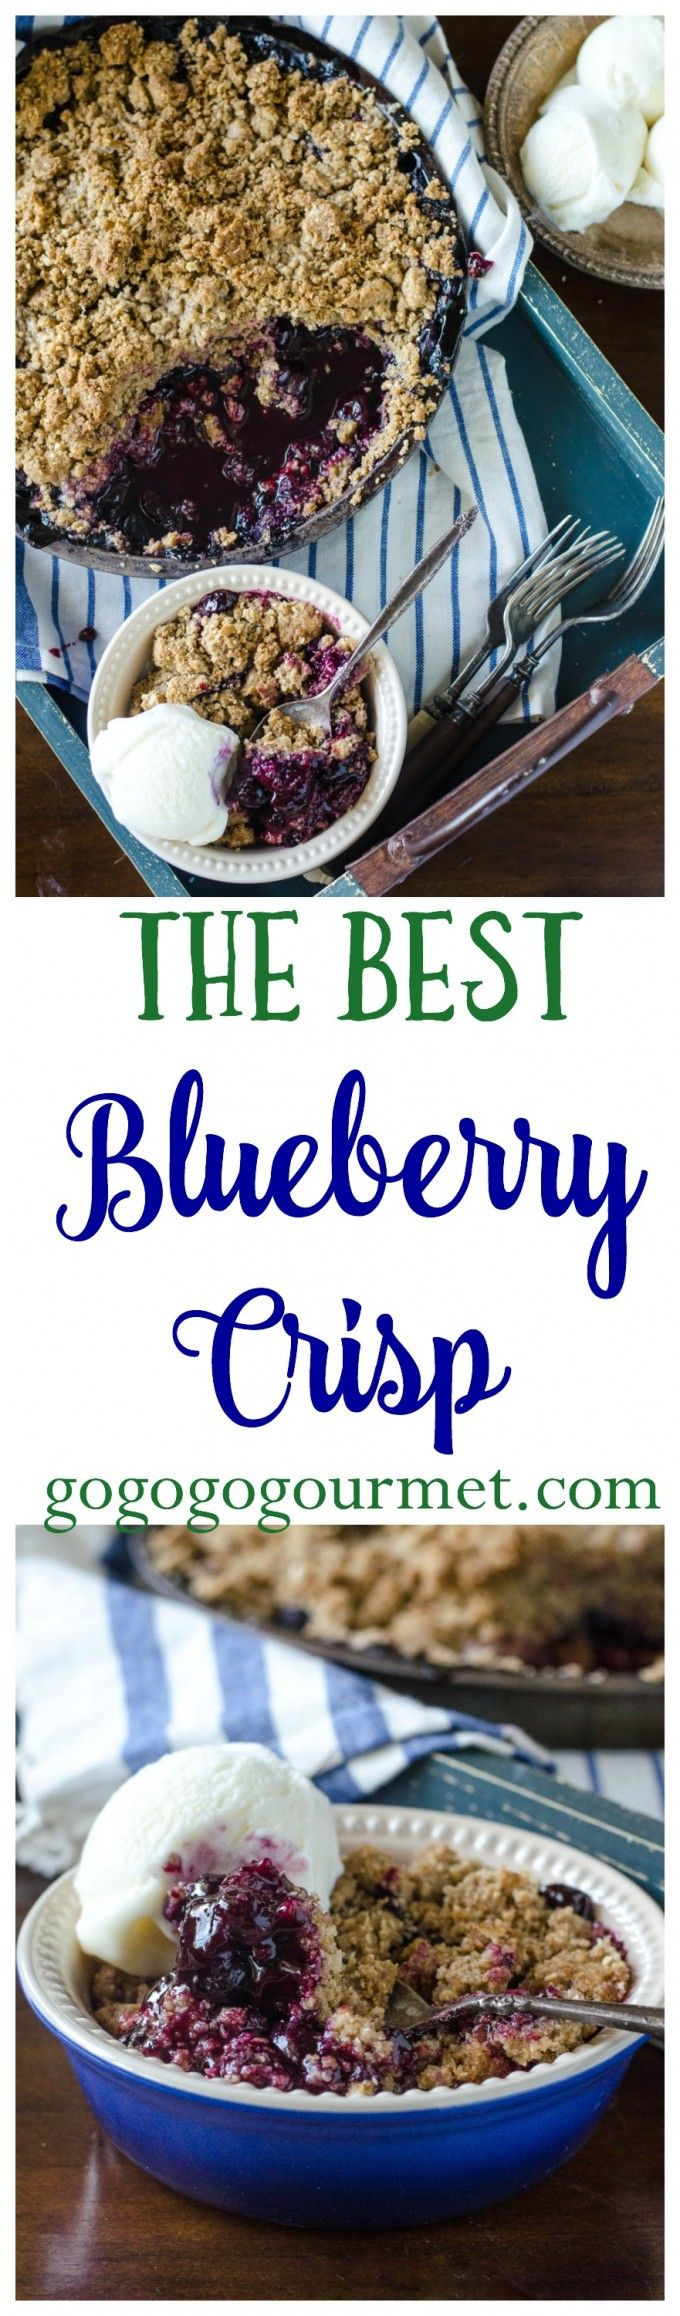 The BEST Blueberry Crisp recipe on all of Pinterest! | Go Go Go Gourmet @Go Go Go Gourmet via @gogogogourmet